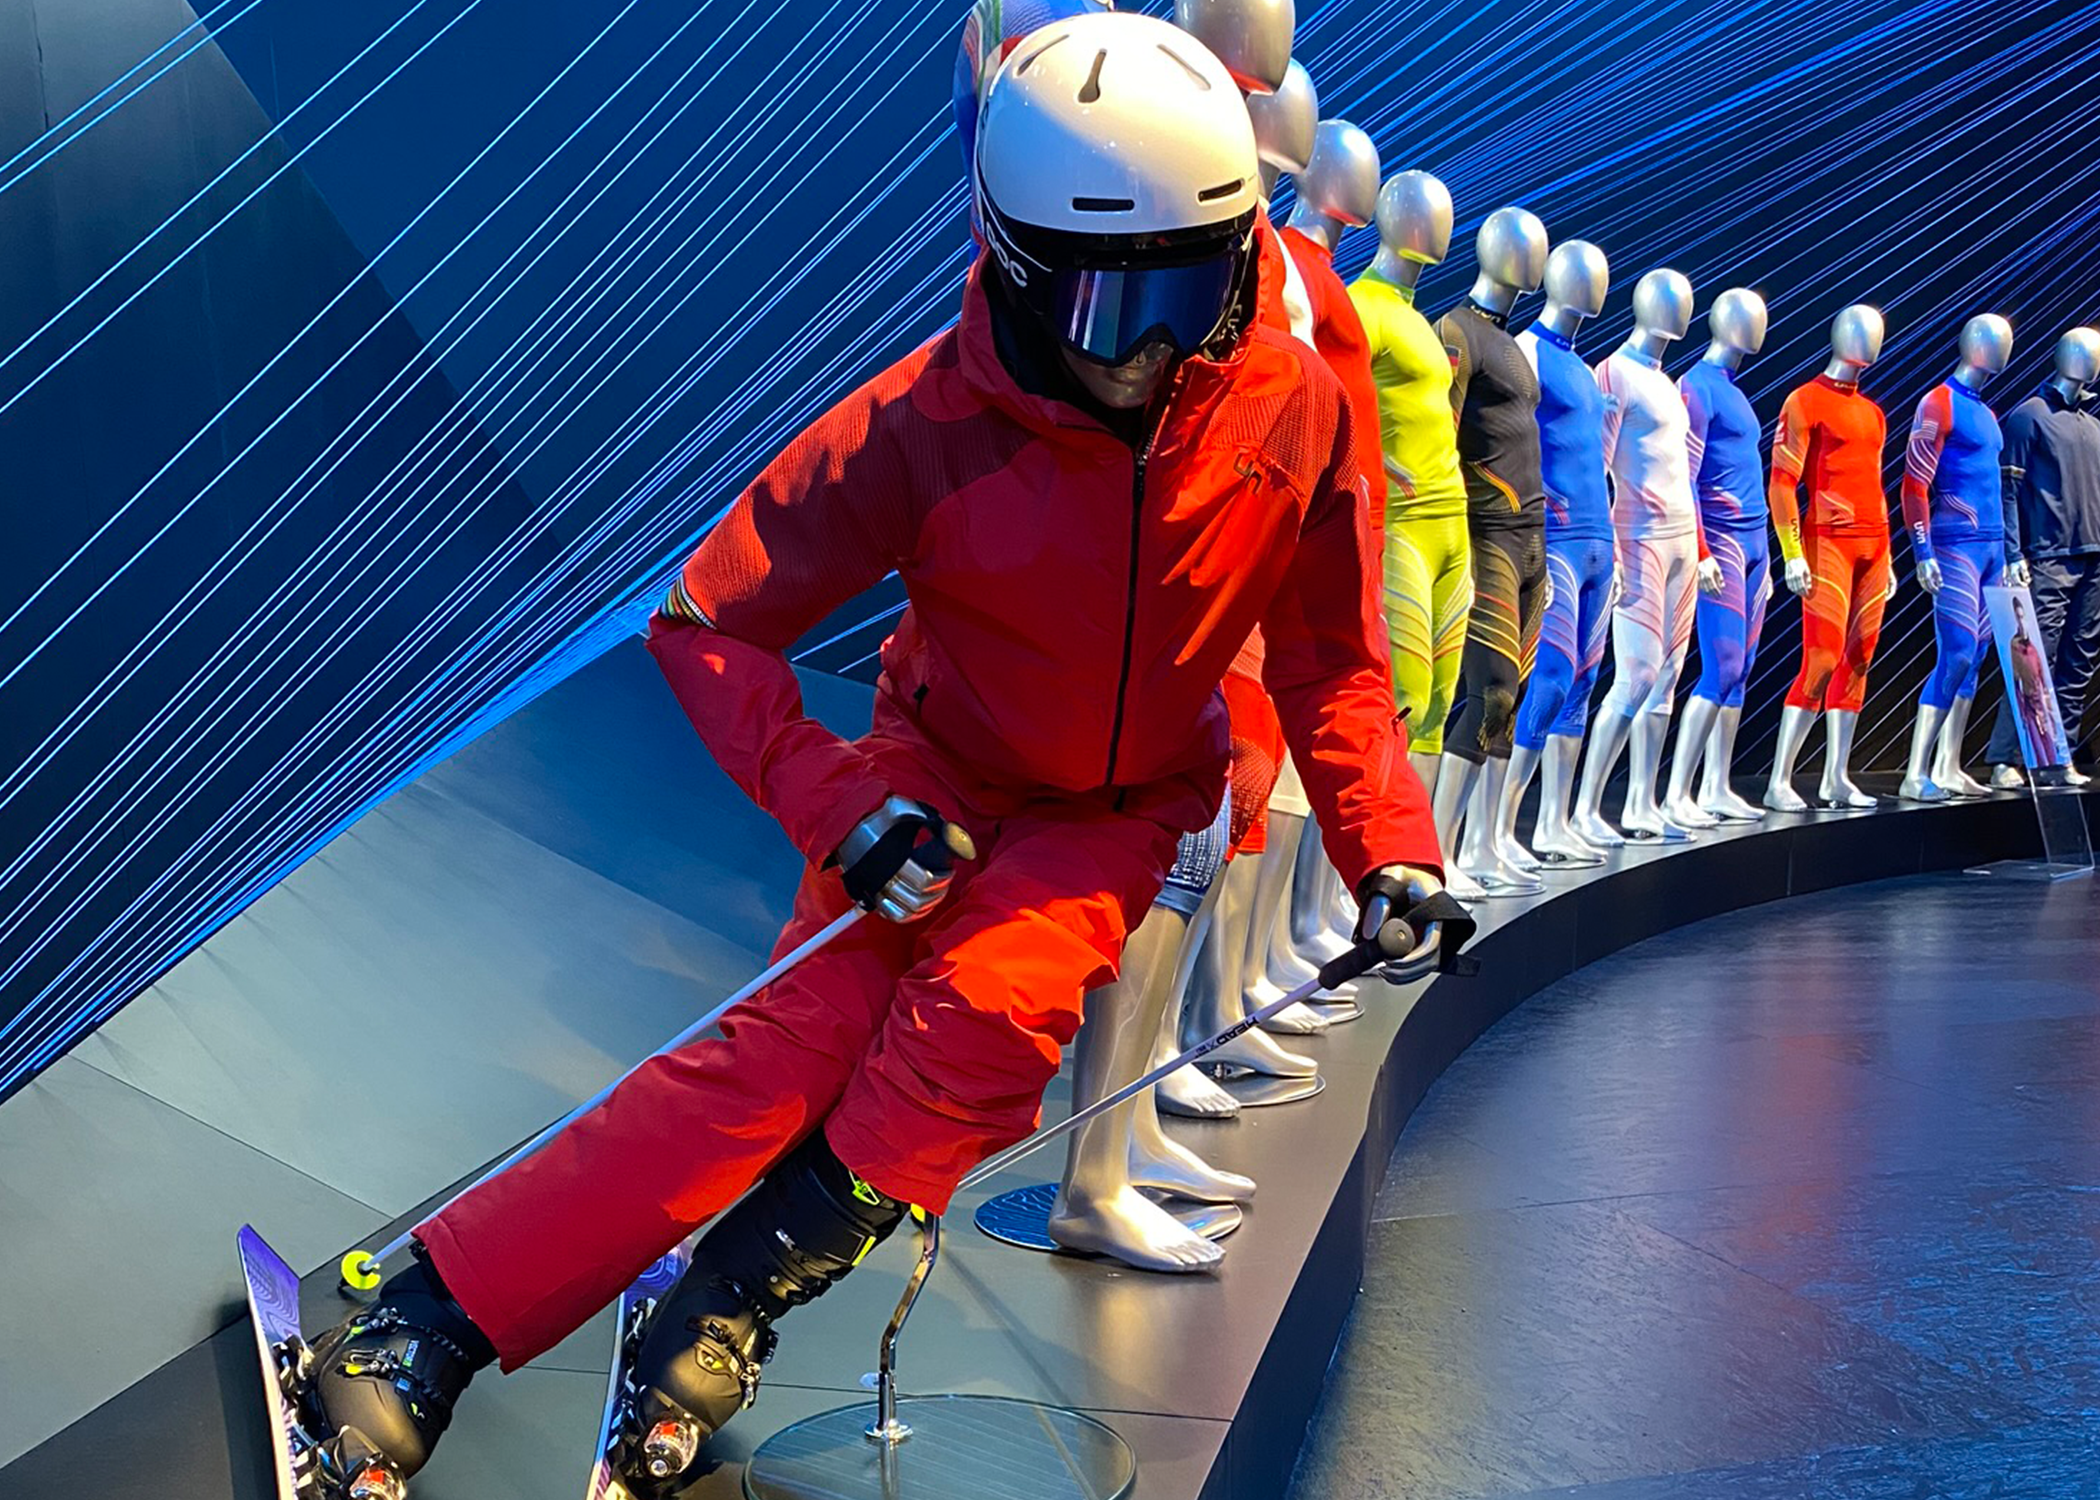 Technical sportswear for snow sports